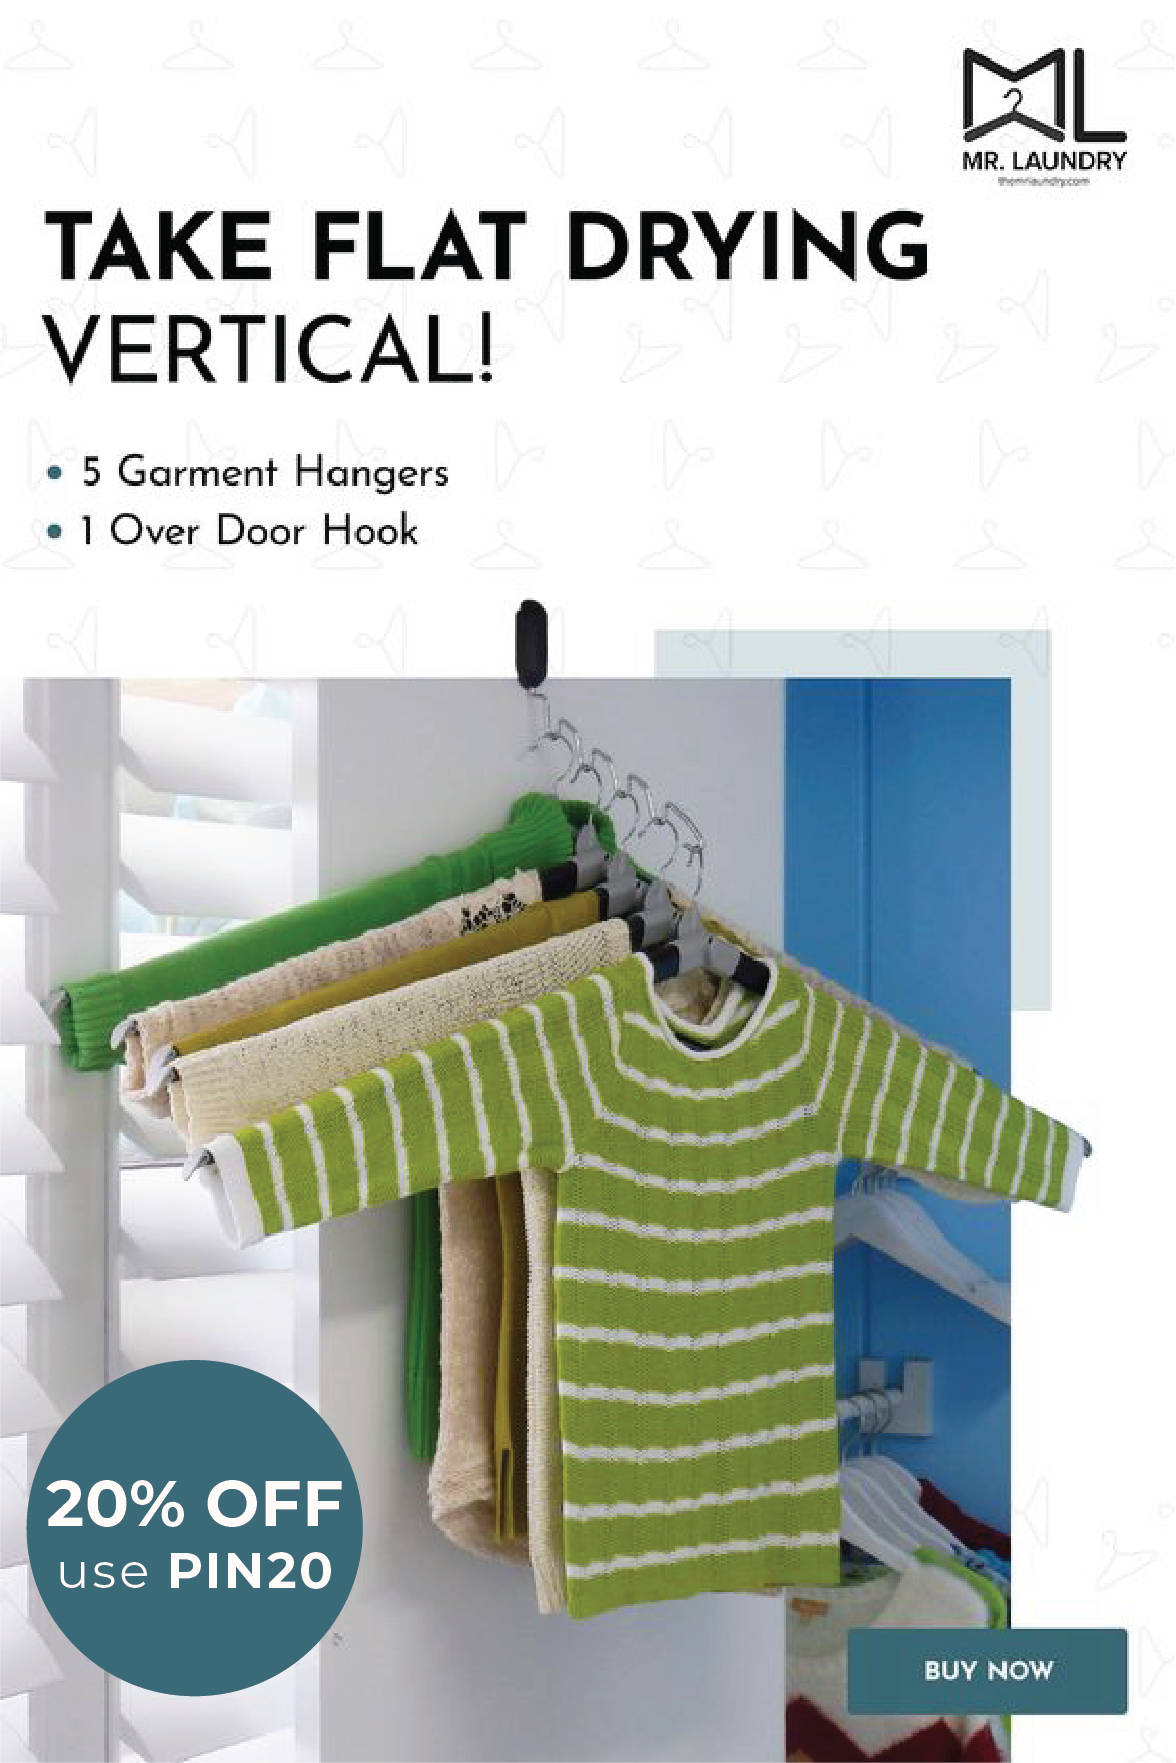 Basics Hang Dry System In 2020 Clothes Drying Racks Laundry